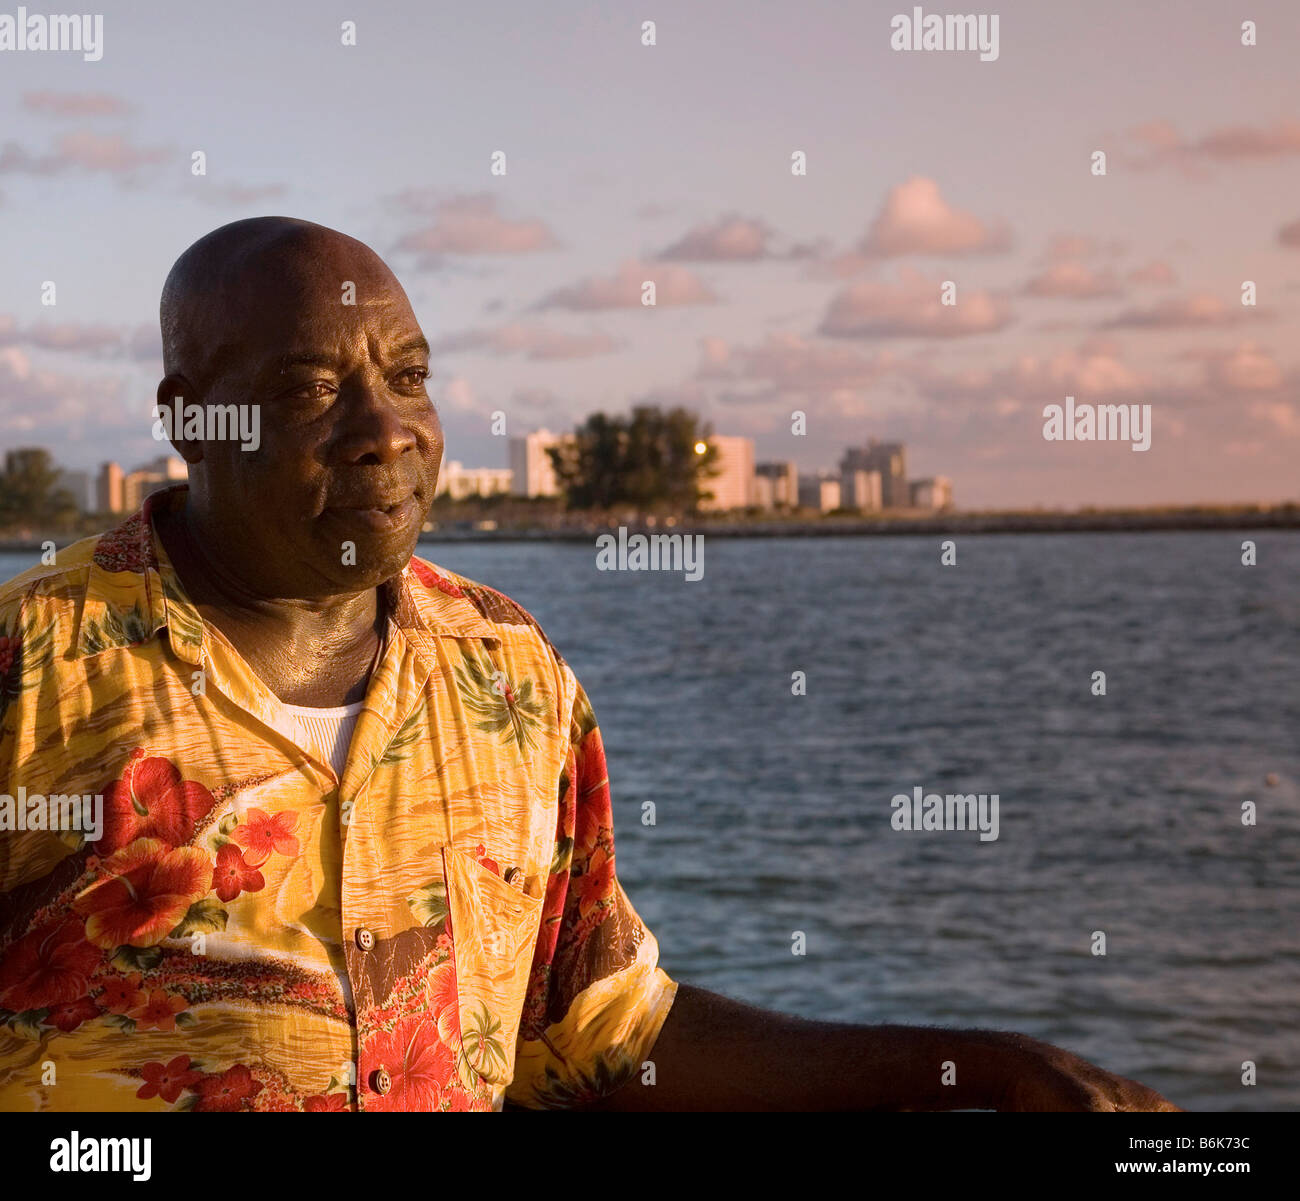 A caribbean man enjoying a tropical sunset over the water - Stock Image